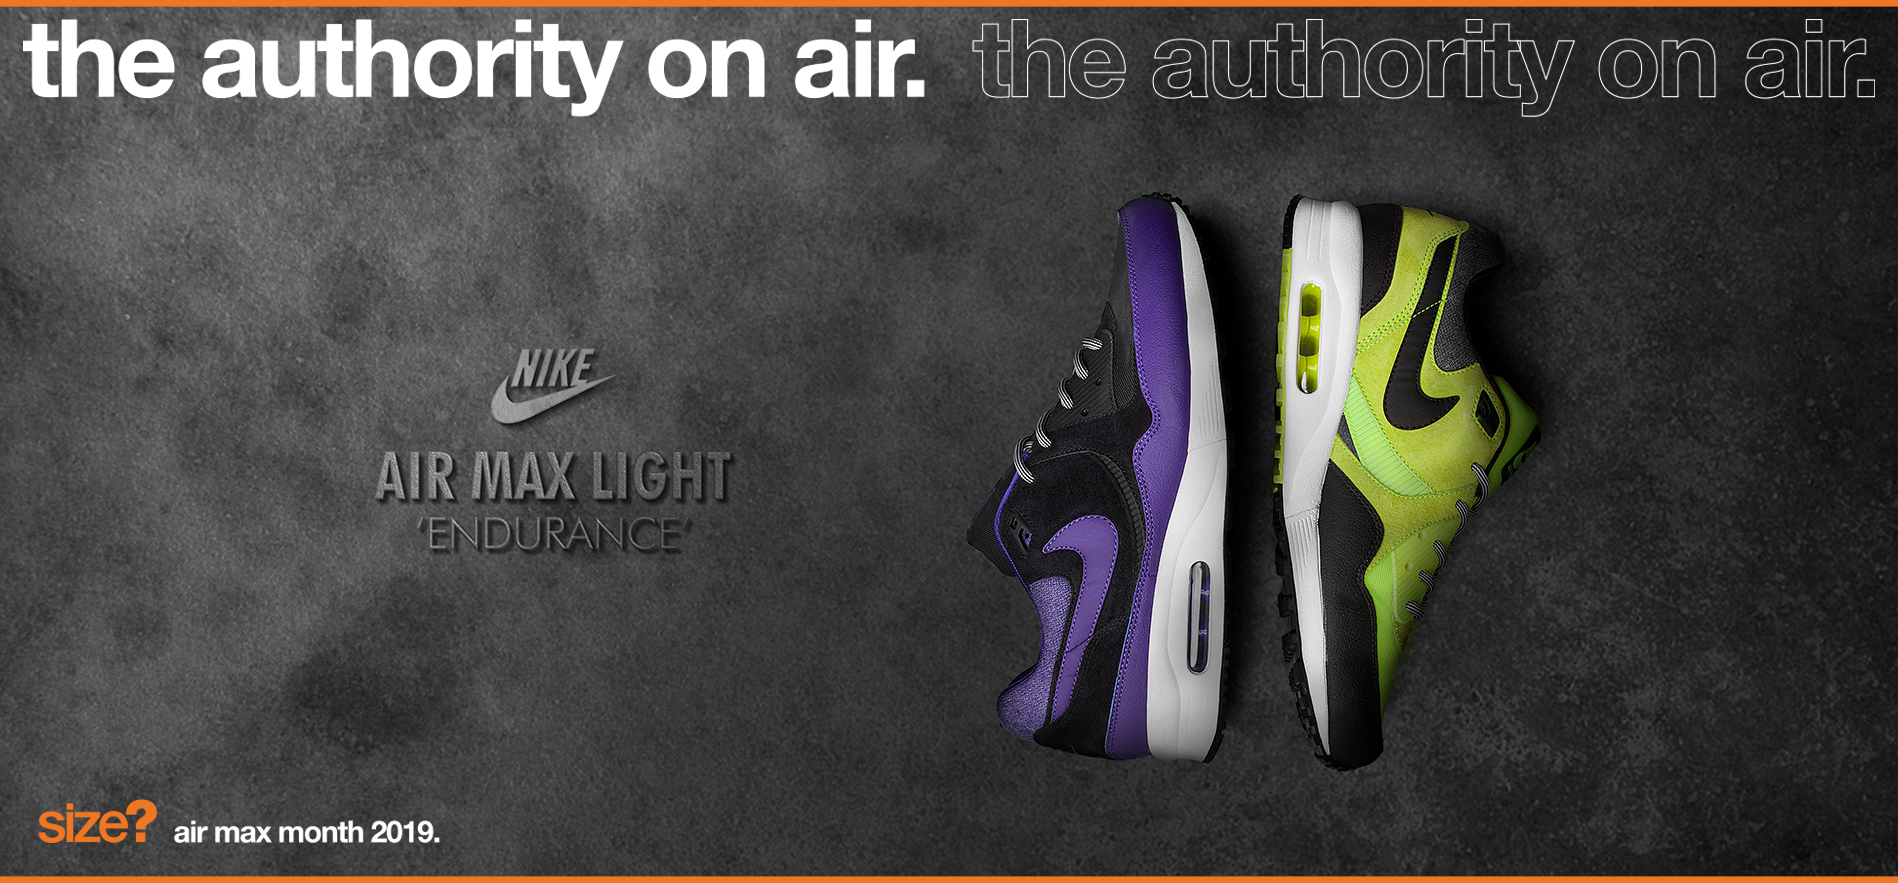 the authority on air: Air Max Light 'Endurance'